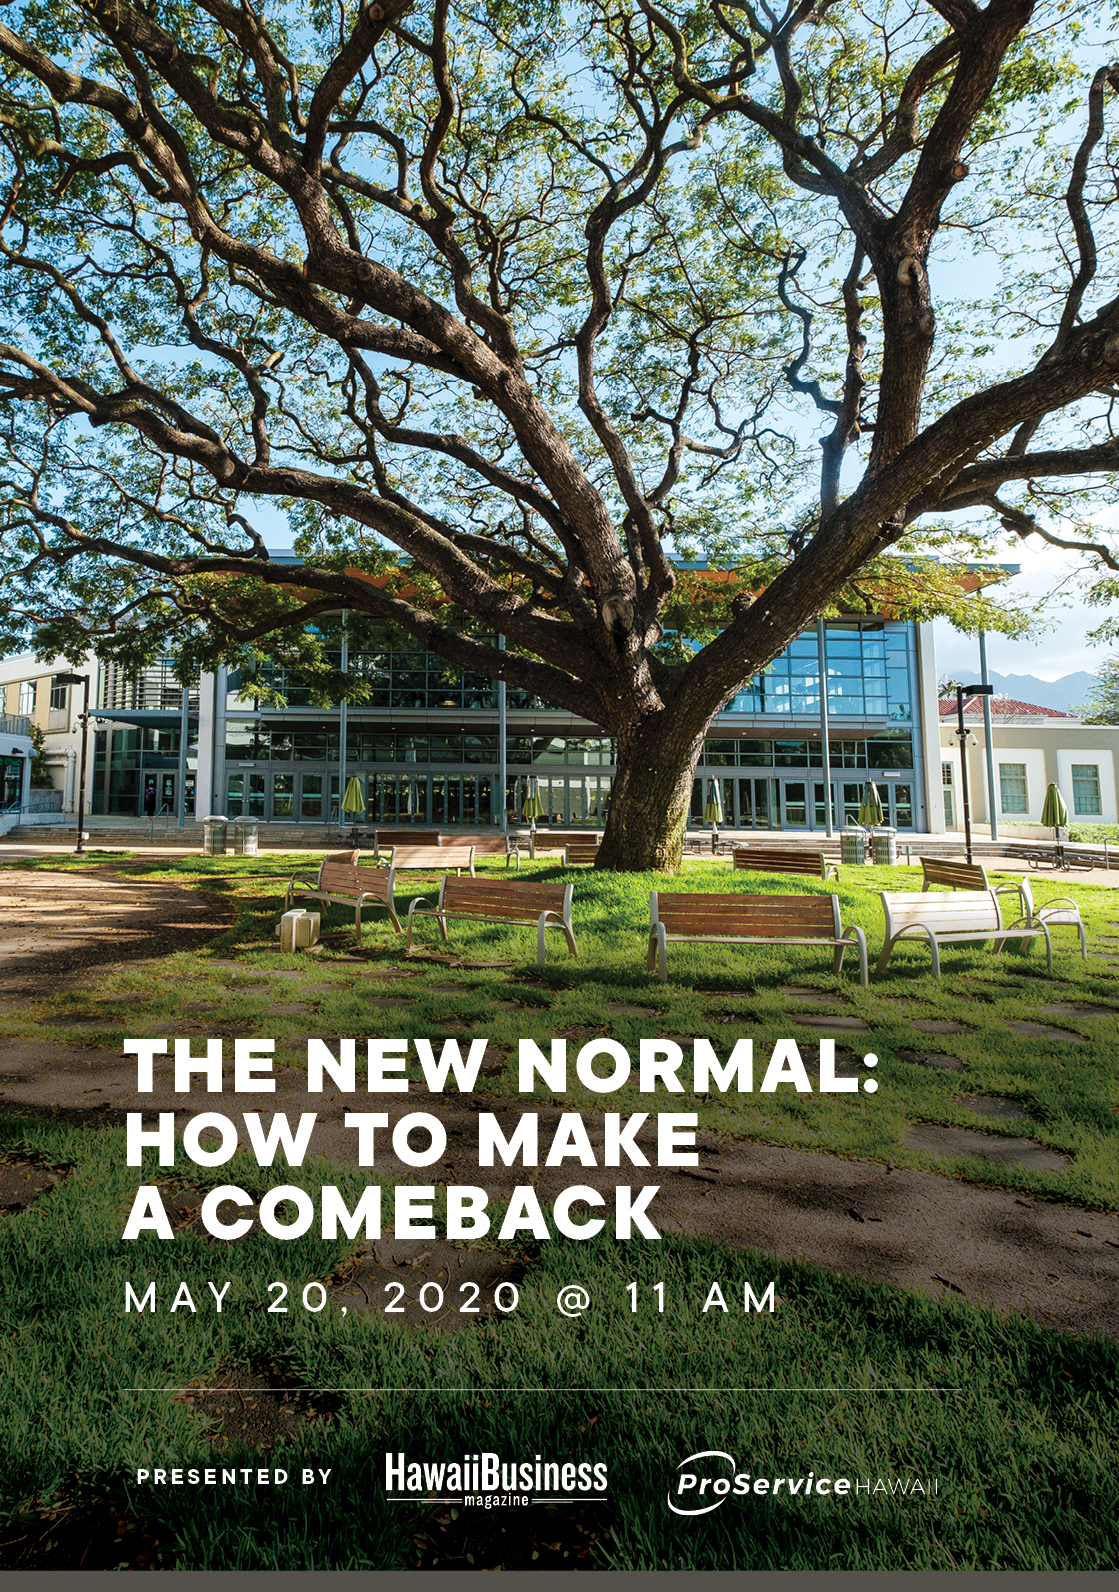 The New Normal: How to Make a Comeback